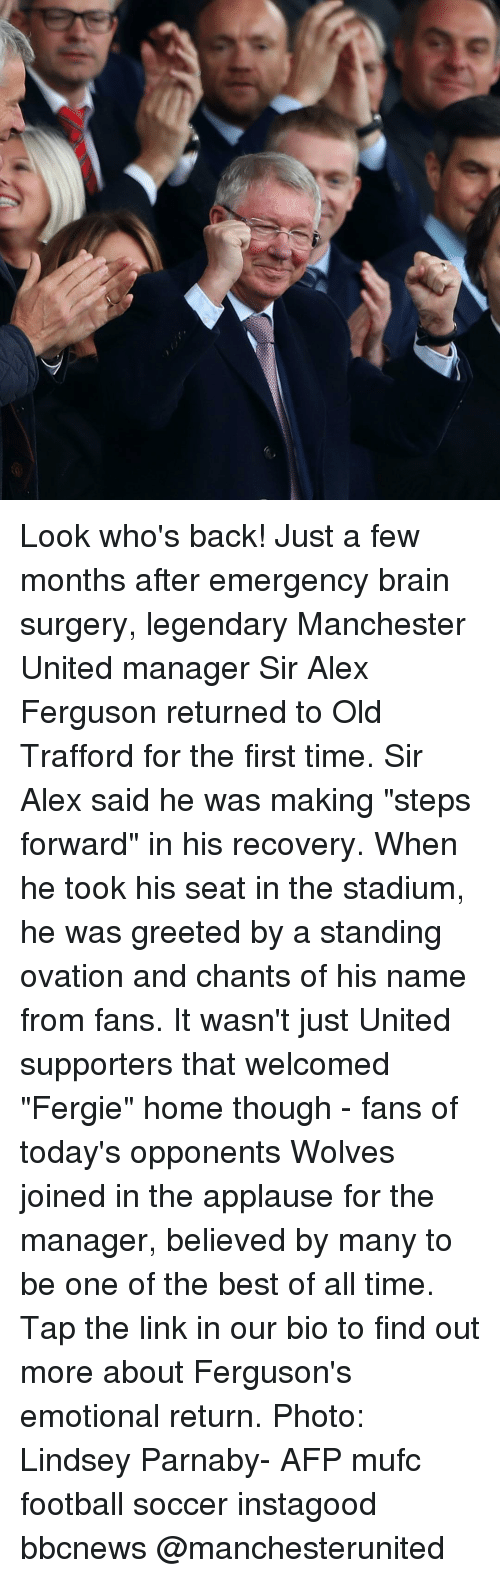 """Manchester United: Look who's back! Just a few months after emergency brain surgery, legendary Manchester United manager Sir Alex Ferguson returned to Old Trafford for the first time. Sir Alex said he was making """"steps forward"""" in his recovery. When he took his seat in the stadium, he was greeted by a standing ovation and chants of his name from fans. It wasn't just United supporters that welcomed """"Fergie"""" home though - fans of today's opponents Wolves joined in the applause for the manager, believed by many to be one of the best of all time. Tap the link in our bio to find out more about Ferguson's emotional return. Photo: Lindsey Parnaby- AFP mufc football soccer instagood bbcnews @manchesterunited"""